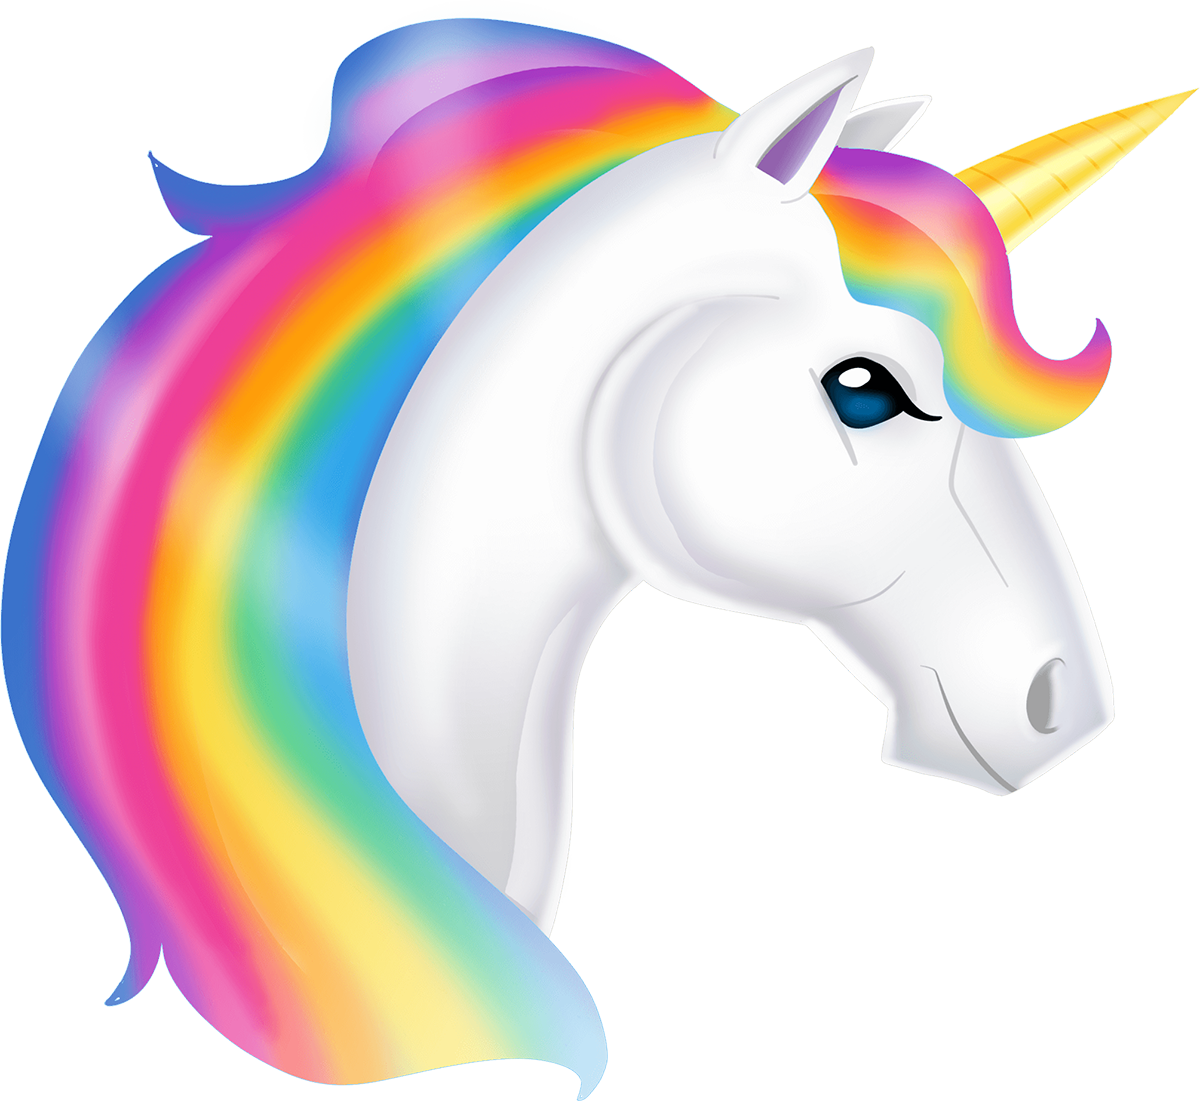 image freeuse download Cherries clipart unicorn. Pin by marina on.